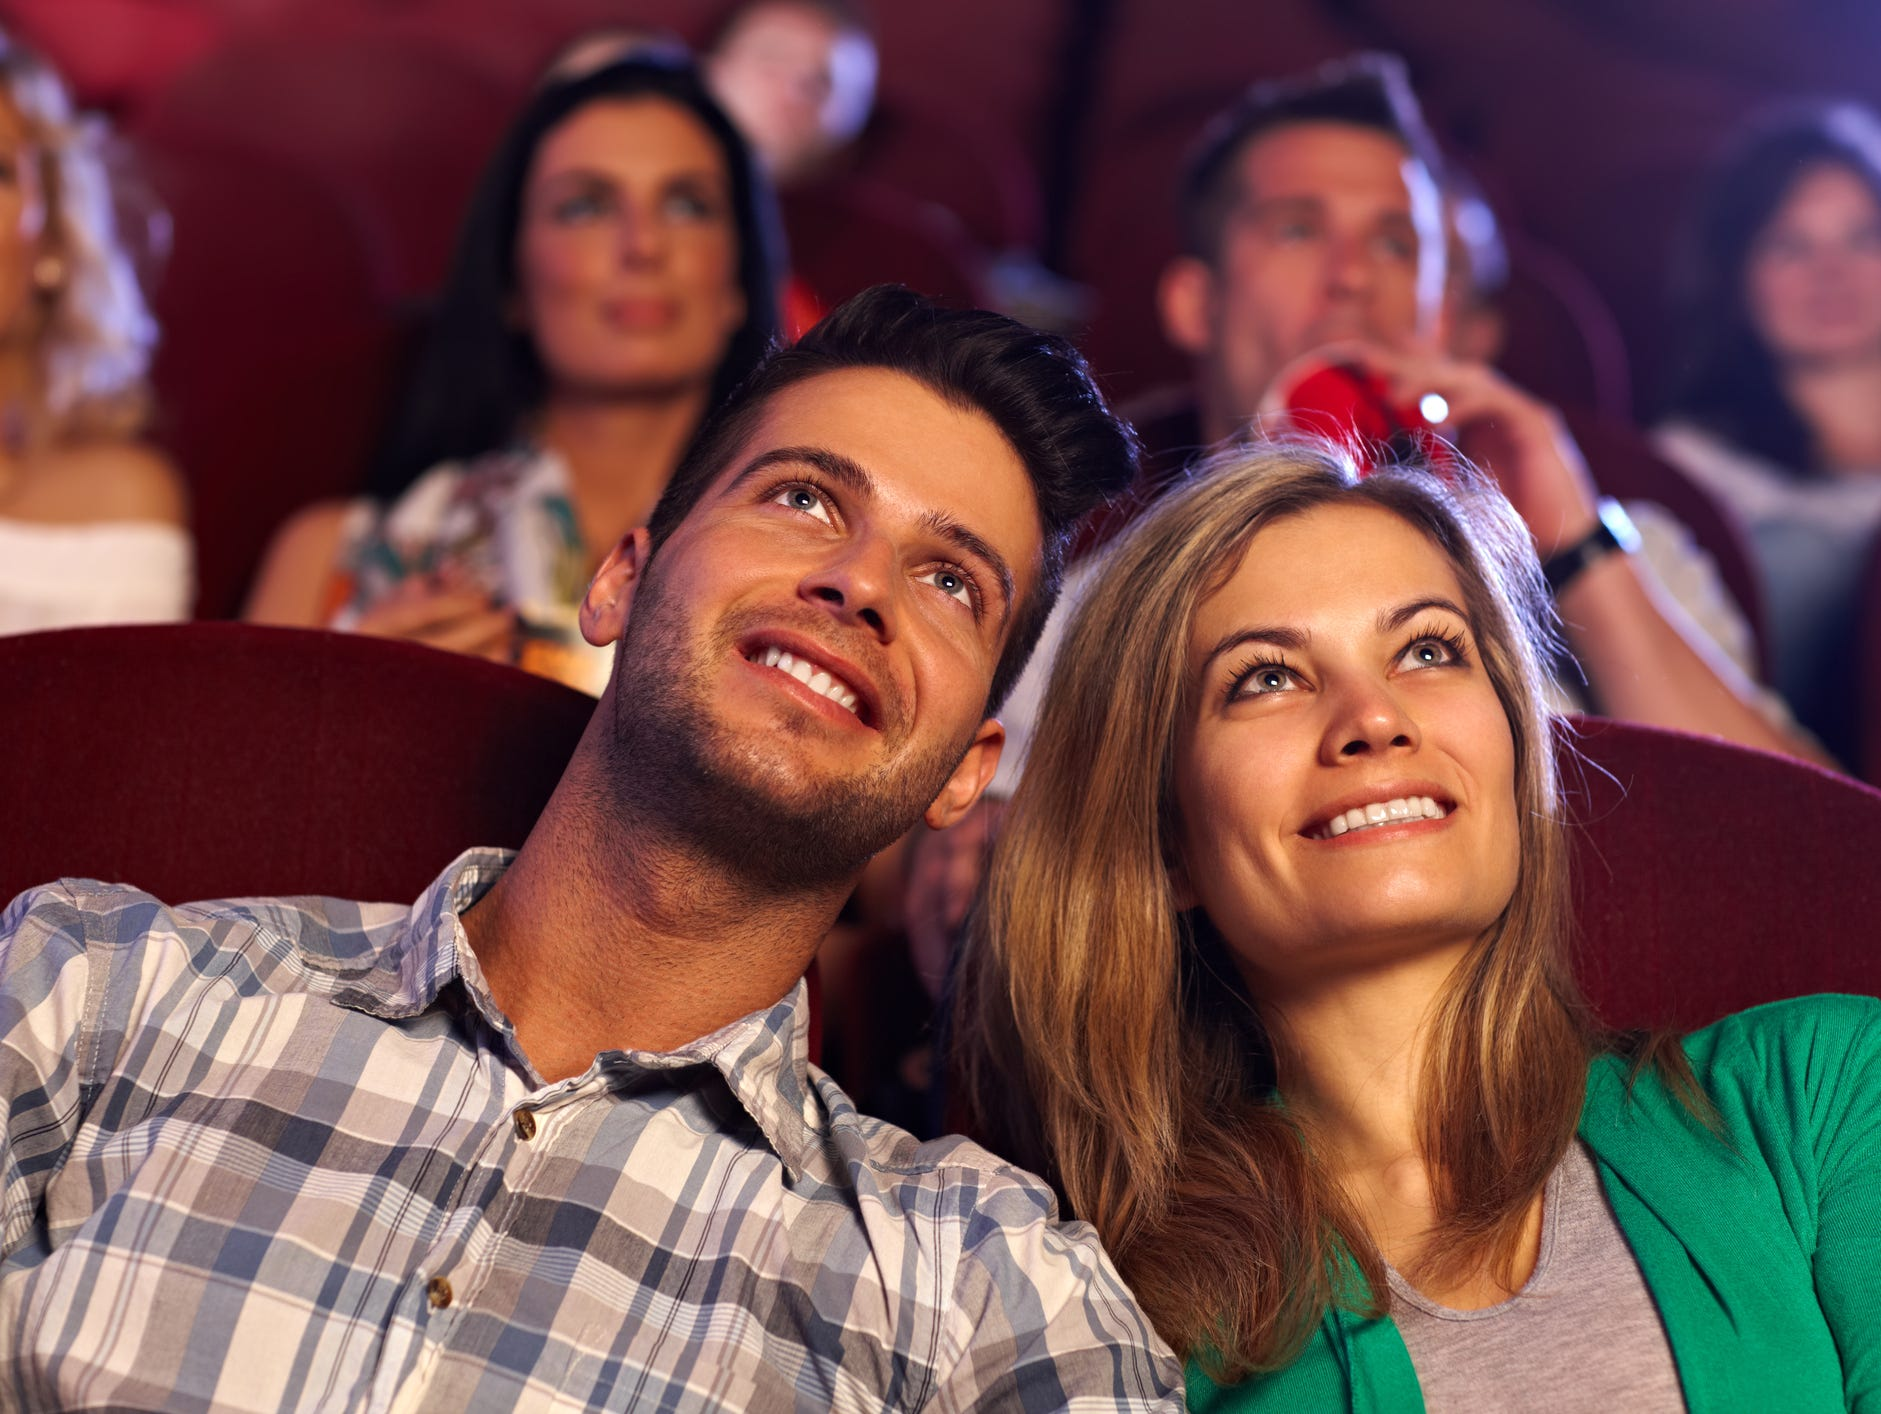 Take the family to the movies without breaking the bank.